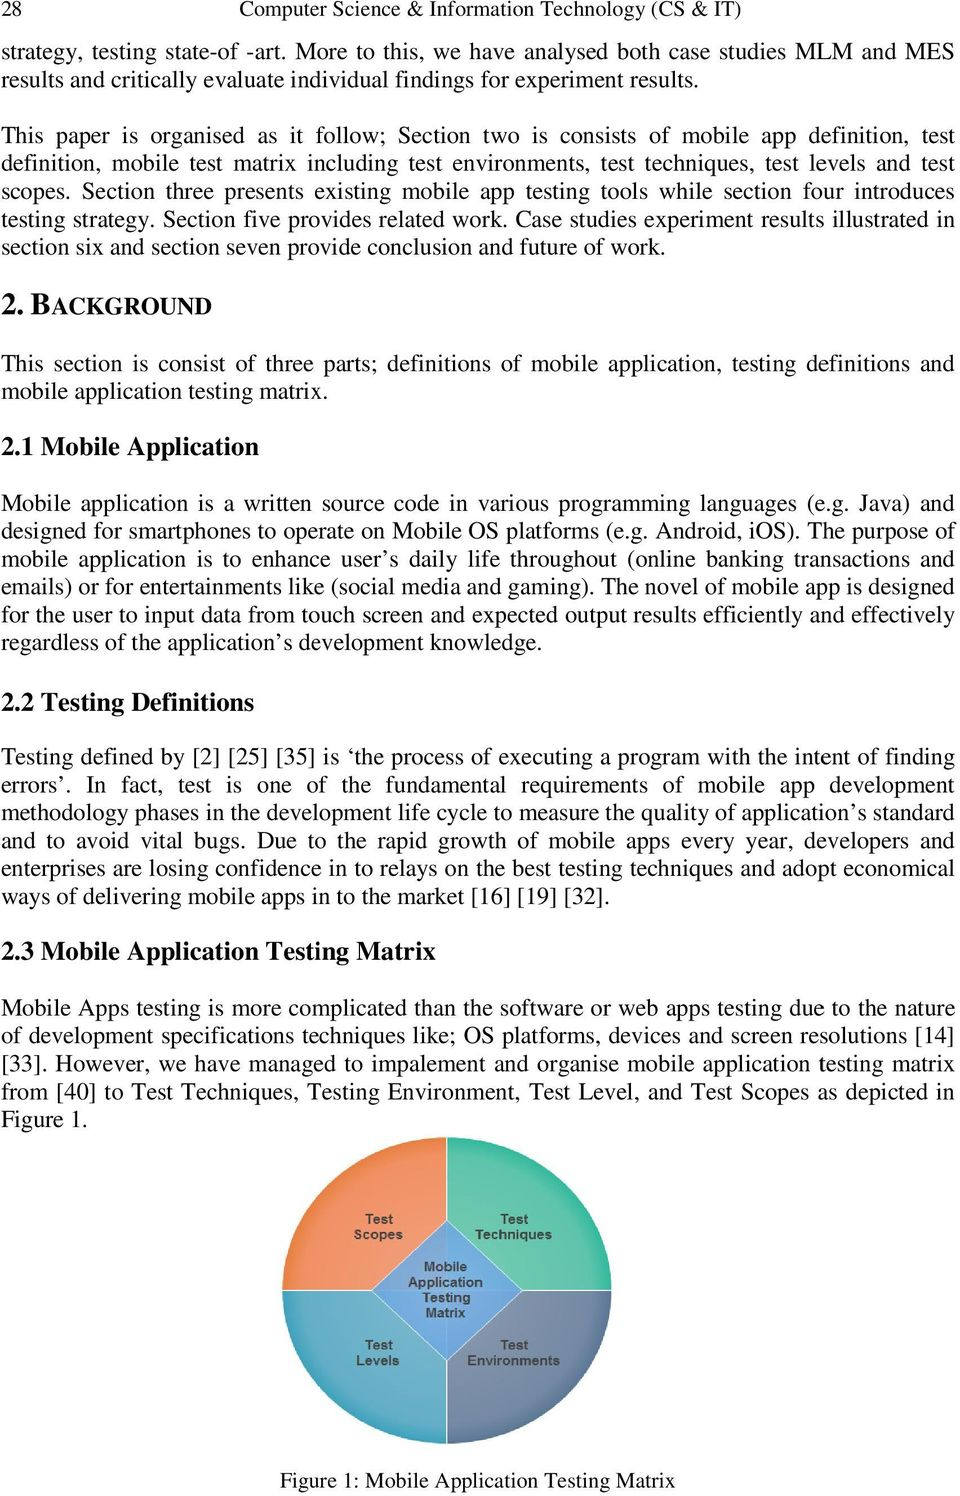 This paper is organised as it follow; Section two is consists of mobile app definition, test definition, mobile test matrix including test environments, test techniques, test levels and test scopes.